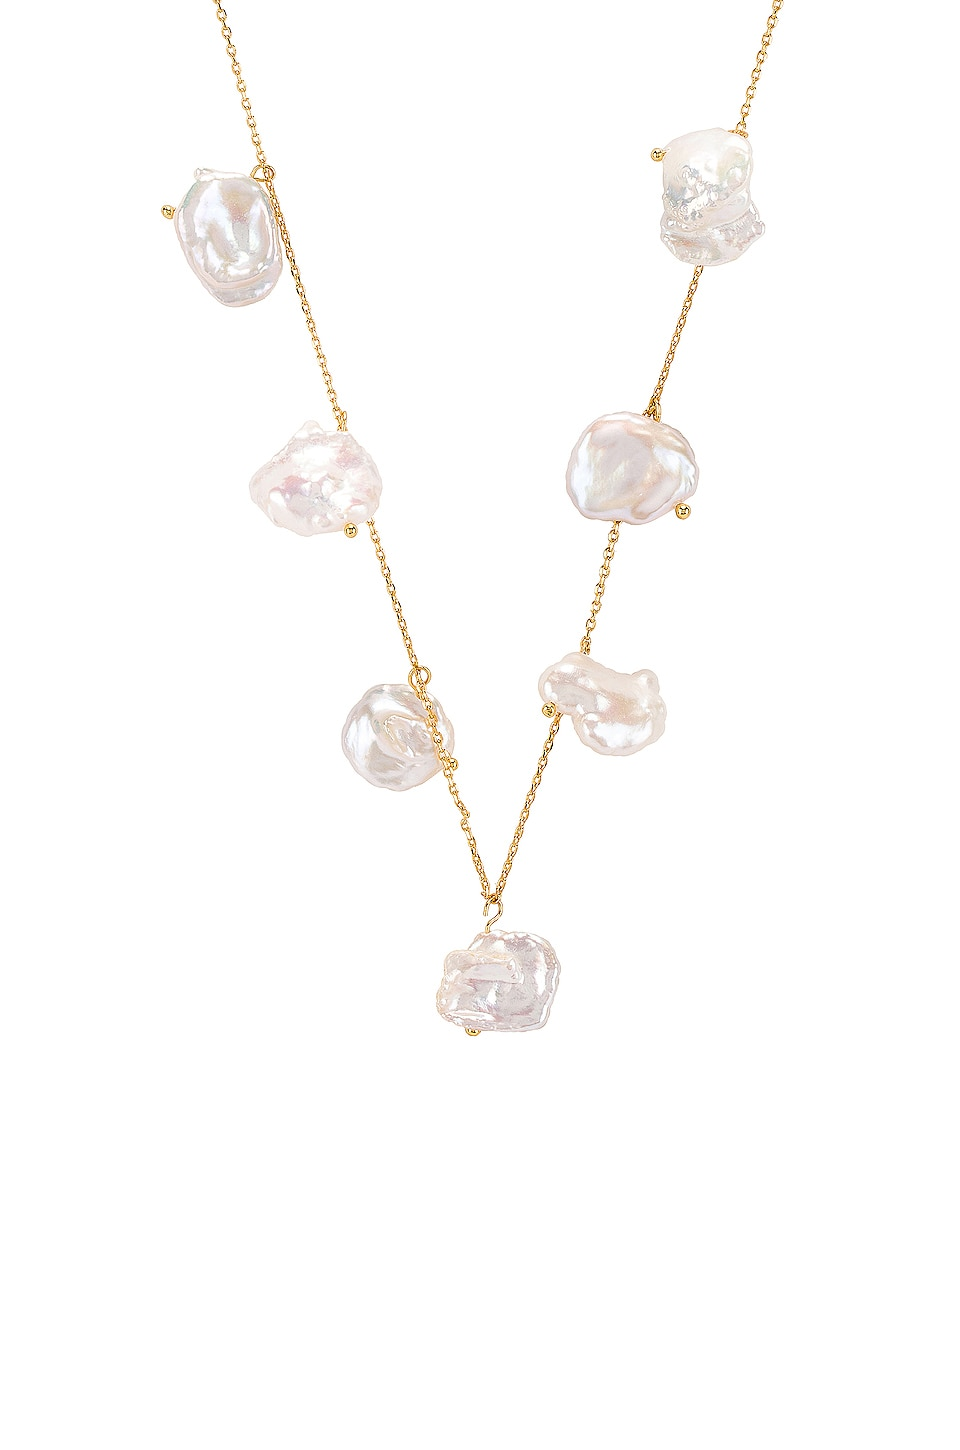 Amber Sceats Bobbie Necklace in Gold